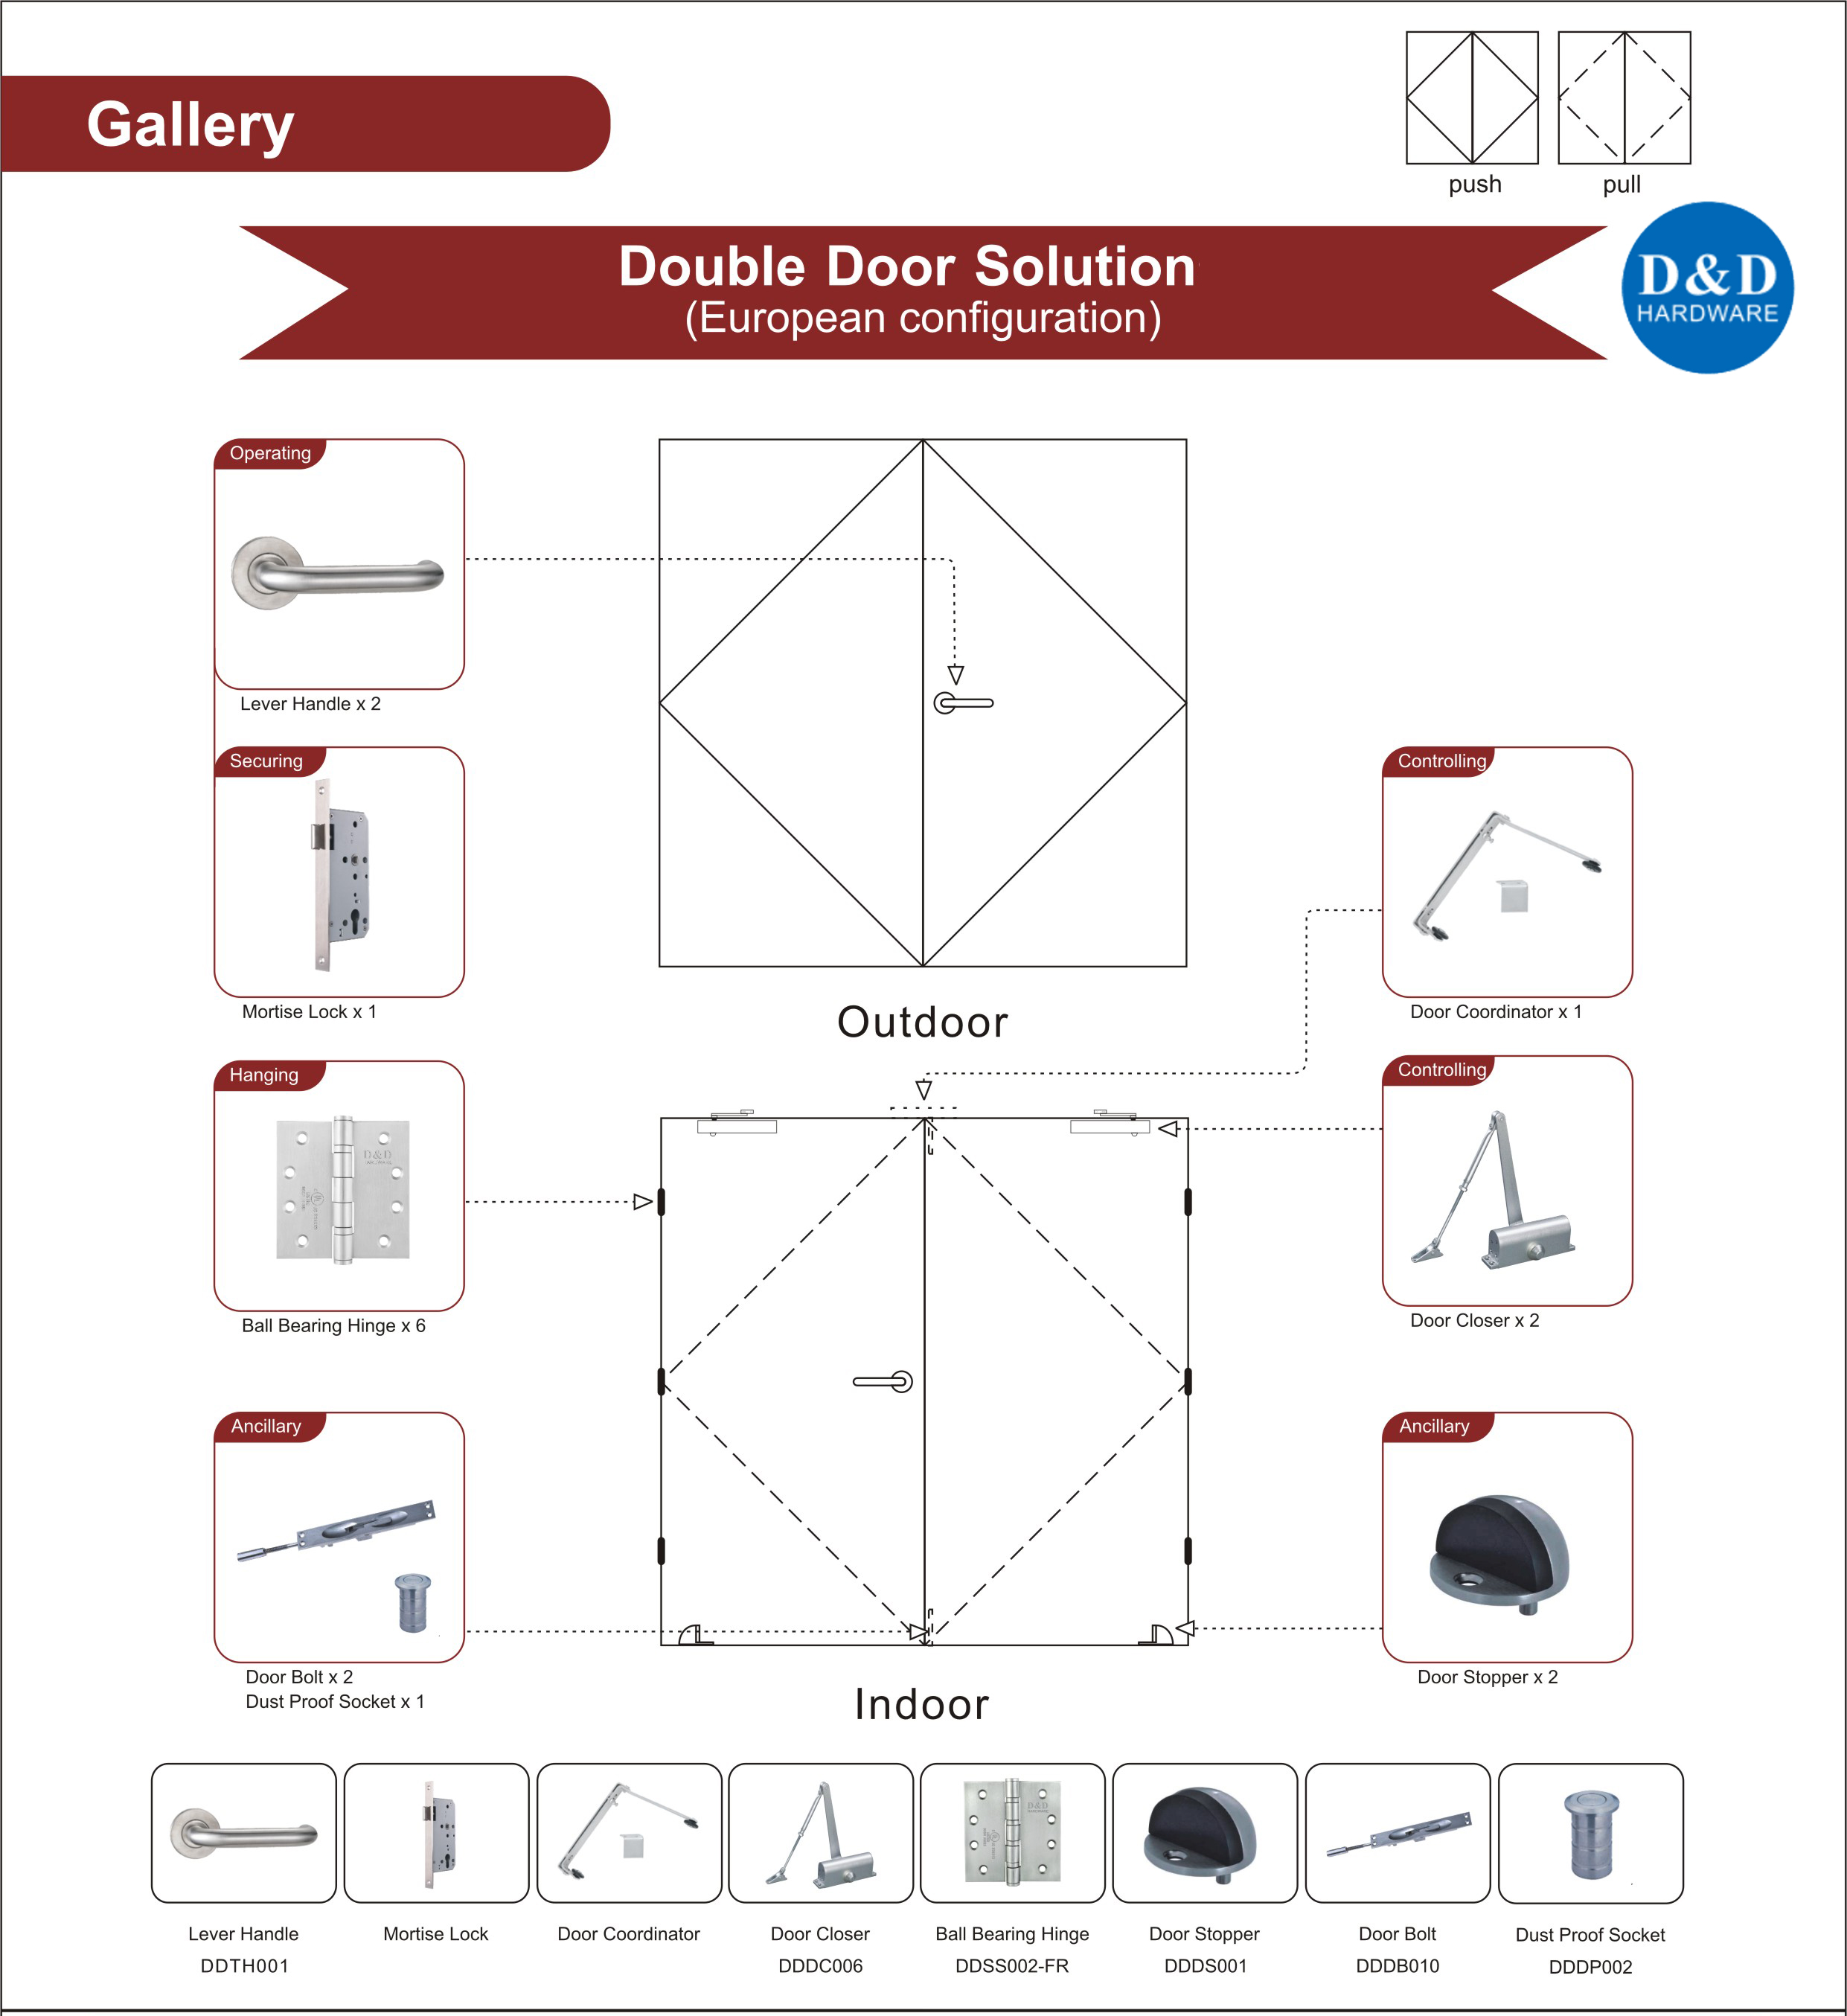 Gallery Fire Rated Door Solution-D&D Hardware